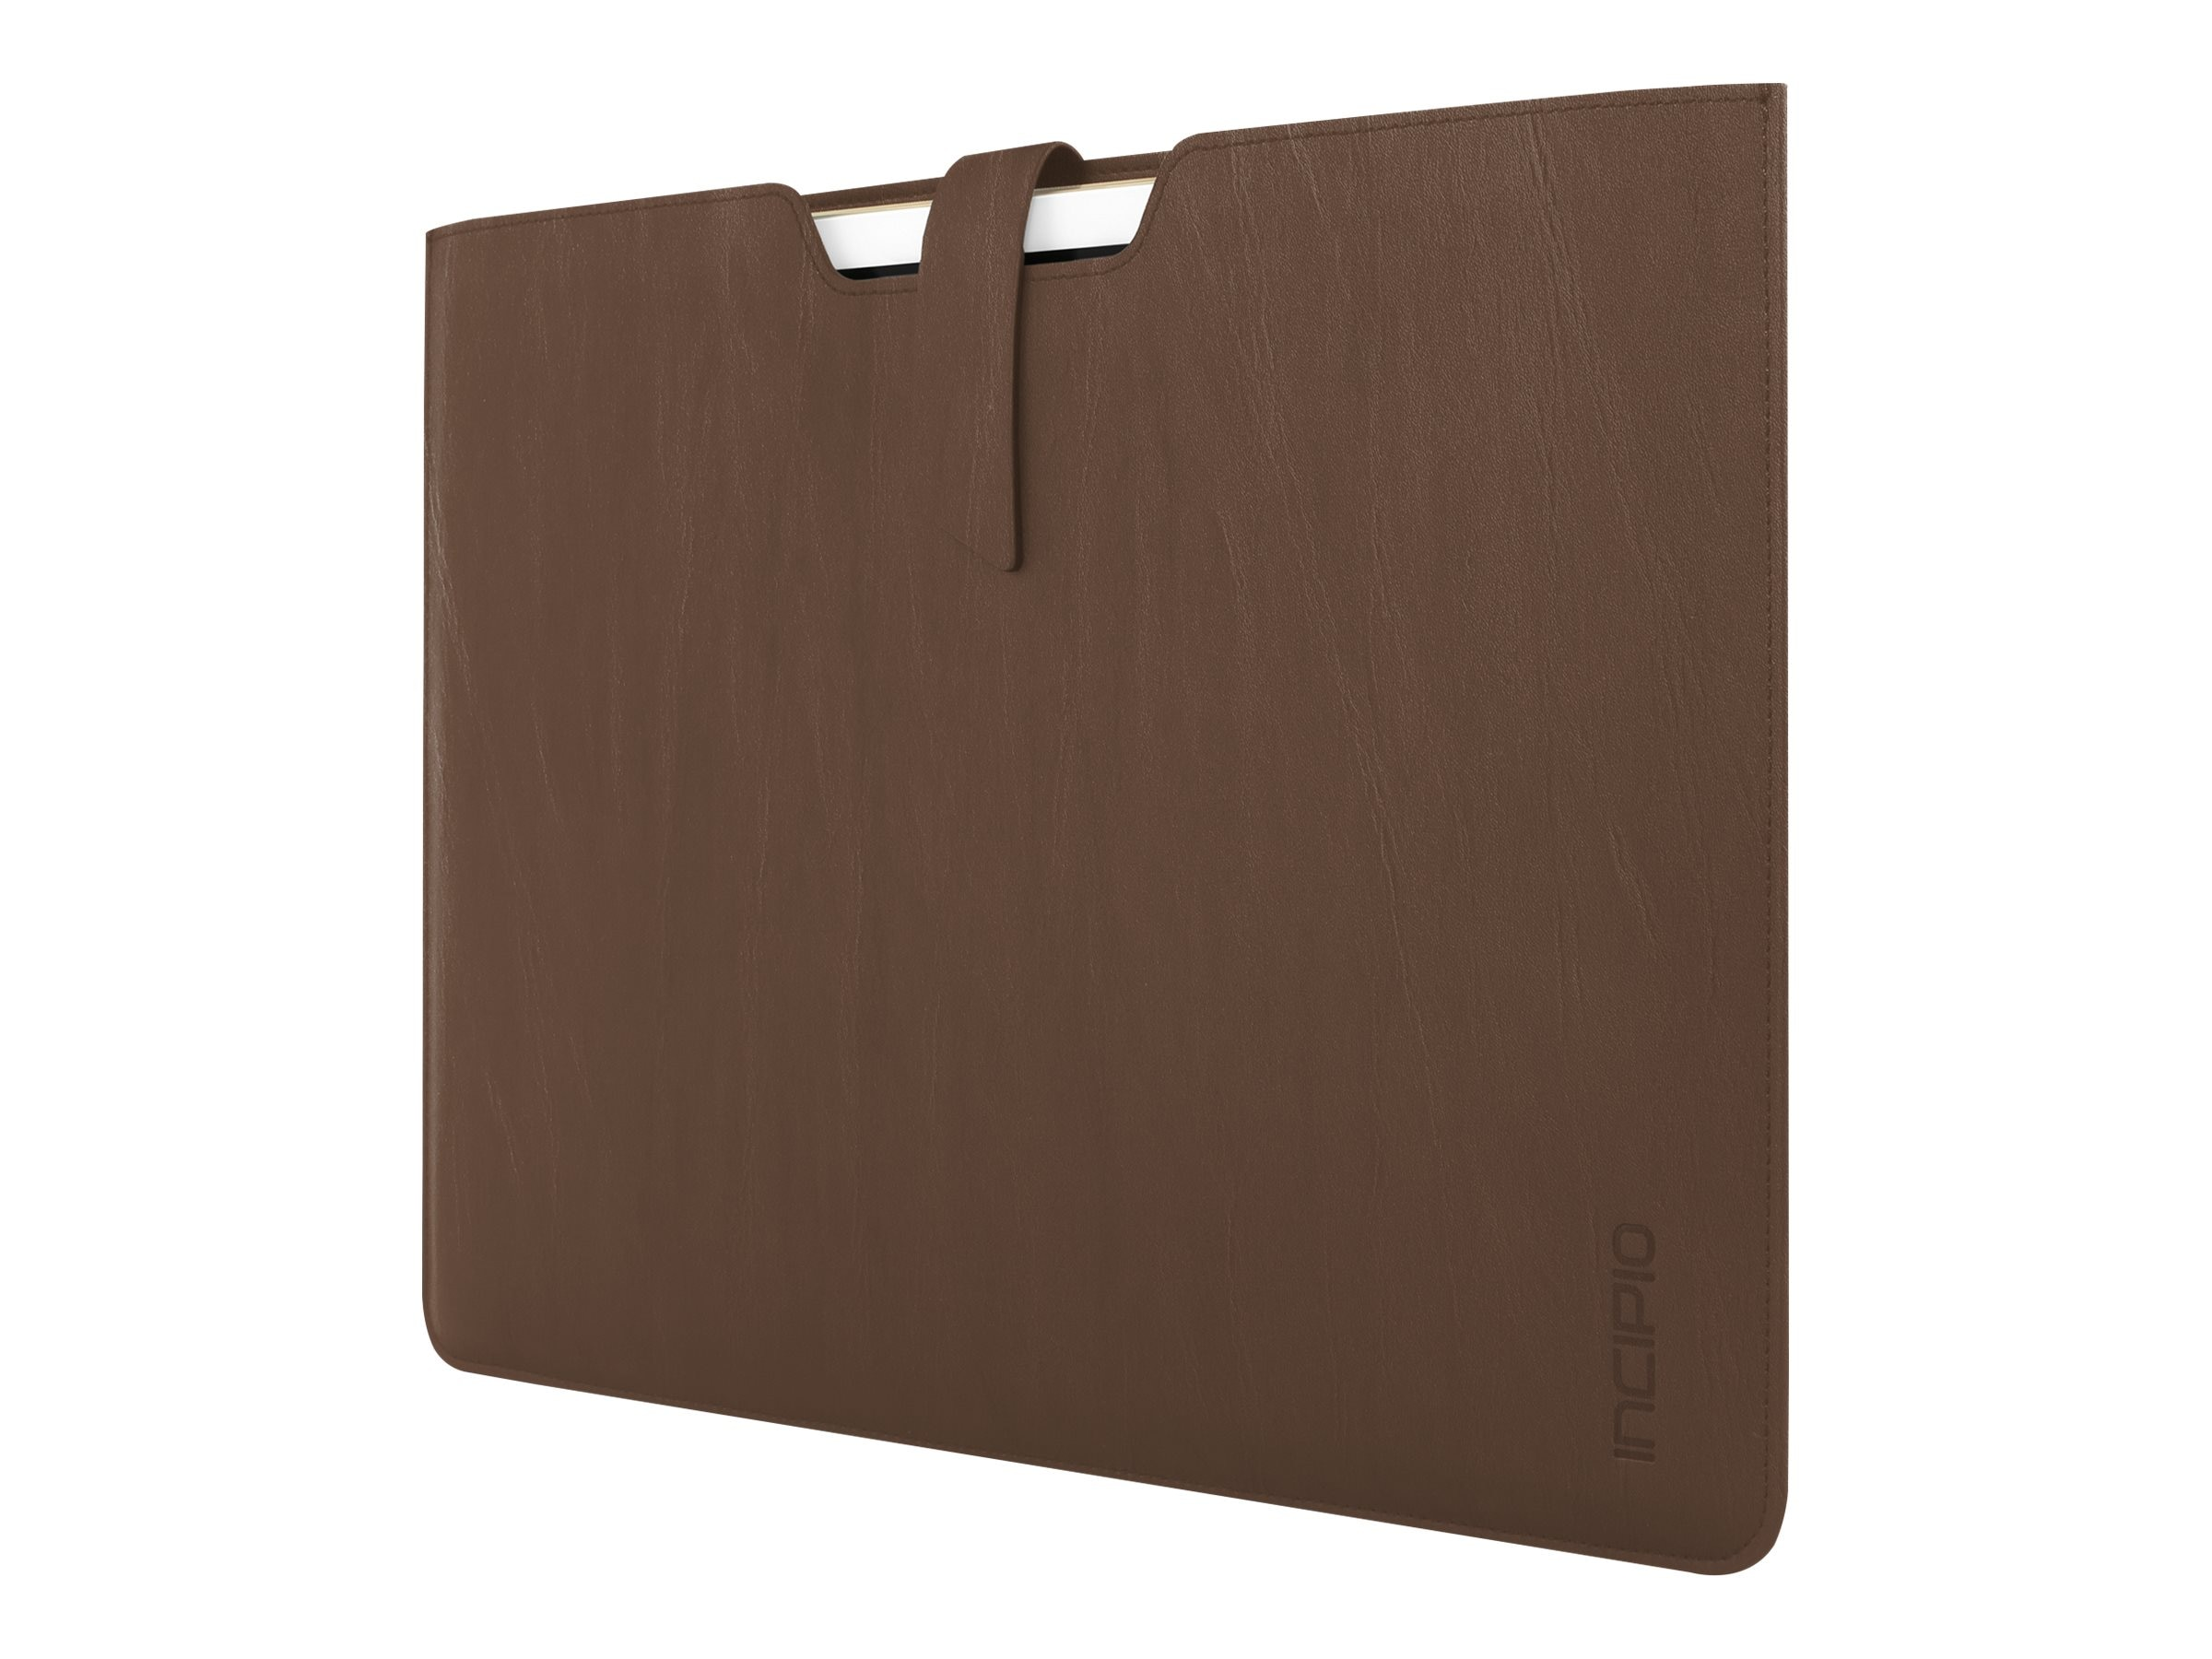 Incipio Lunde Sleeve for iPad Pro, Brown, IPD-291-BRN, 31211871, Carrying Cases - Tablets & eReaders